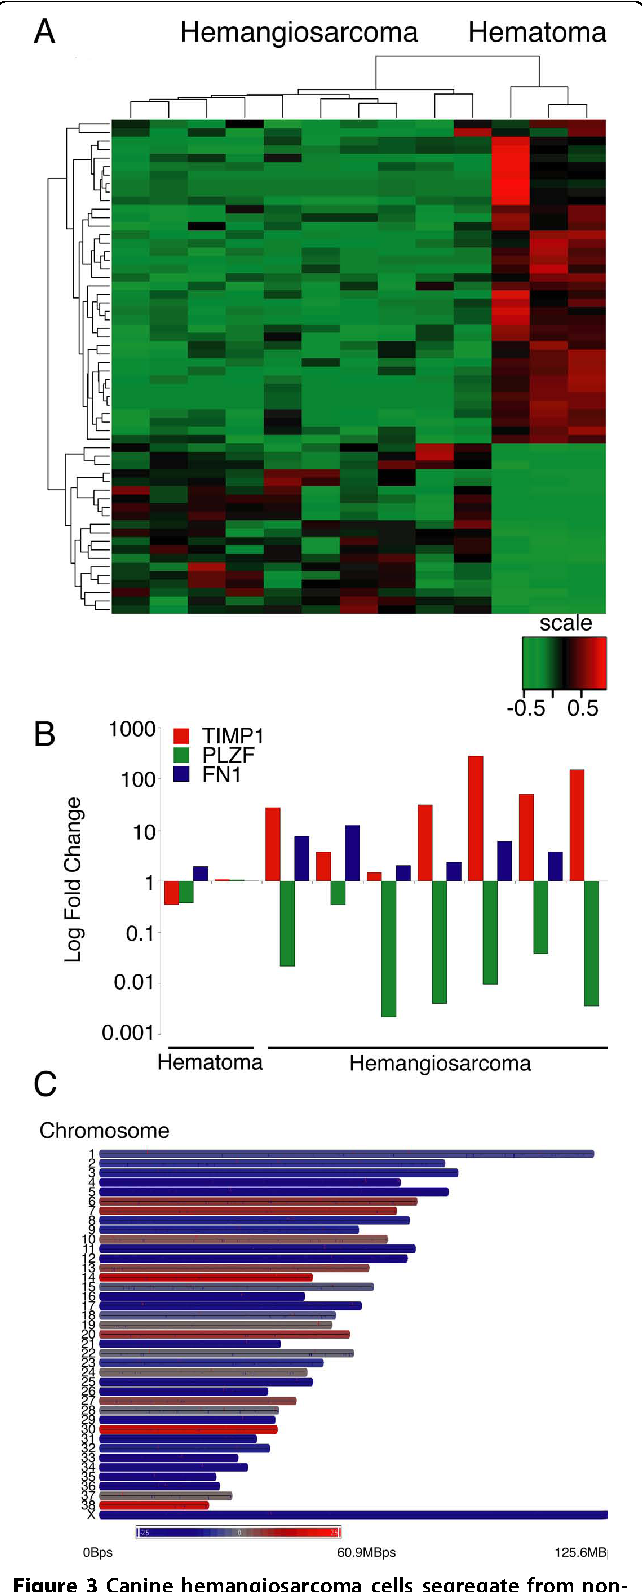 Figure 3 Canine hemangiosarcoma cells segregate from nonmalignant splenic hematoma cells via their gene expression profile. (A) Hierarchical clustering and heat map of differentially expressed genes in 10 hemangiosarcoma samples versus three splenic hematoma samples. Increasing red intensity indicates increased gene expression and increasing green intensity indicates decreased gene expression as shown in the scale bar. The scale